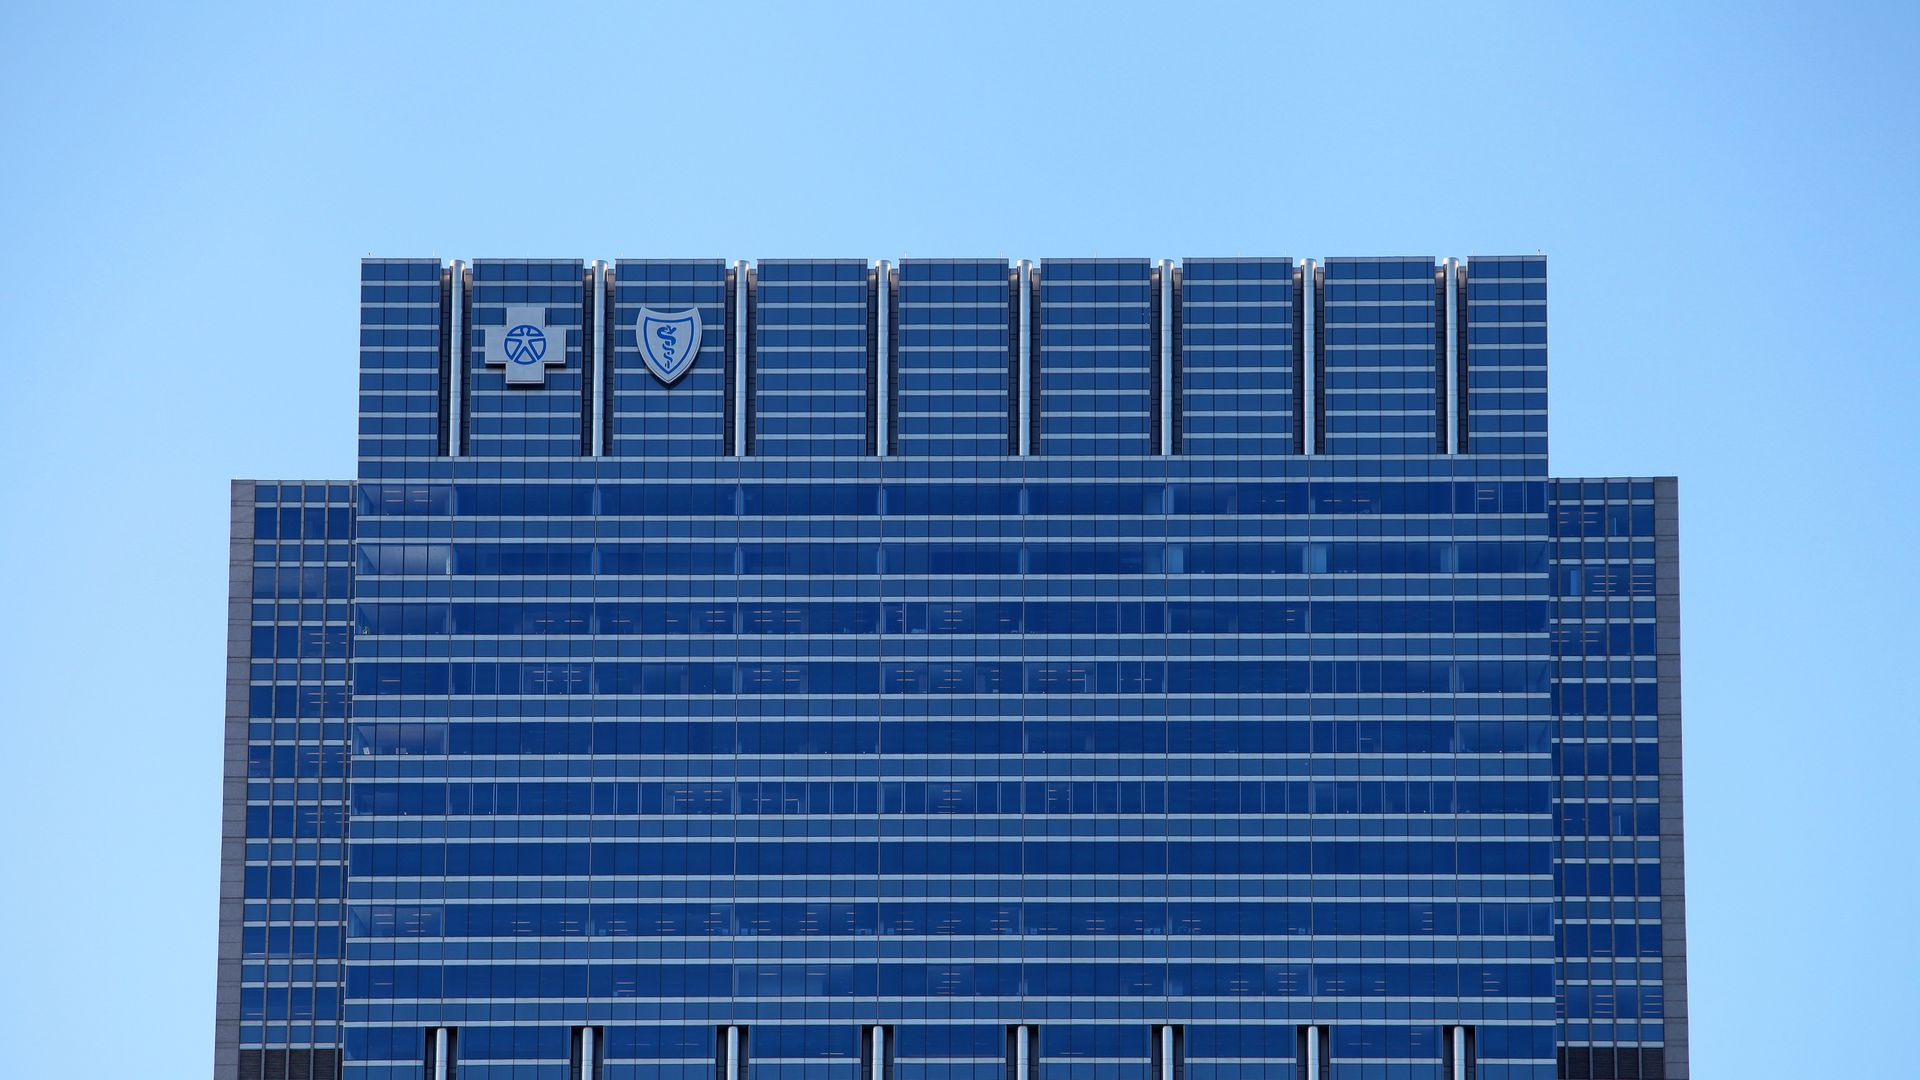 Blue Cross Blue Shield building